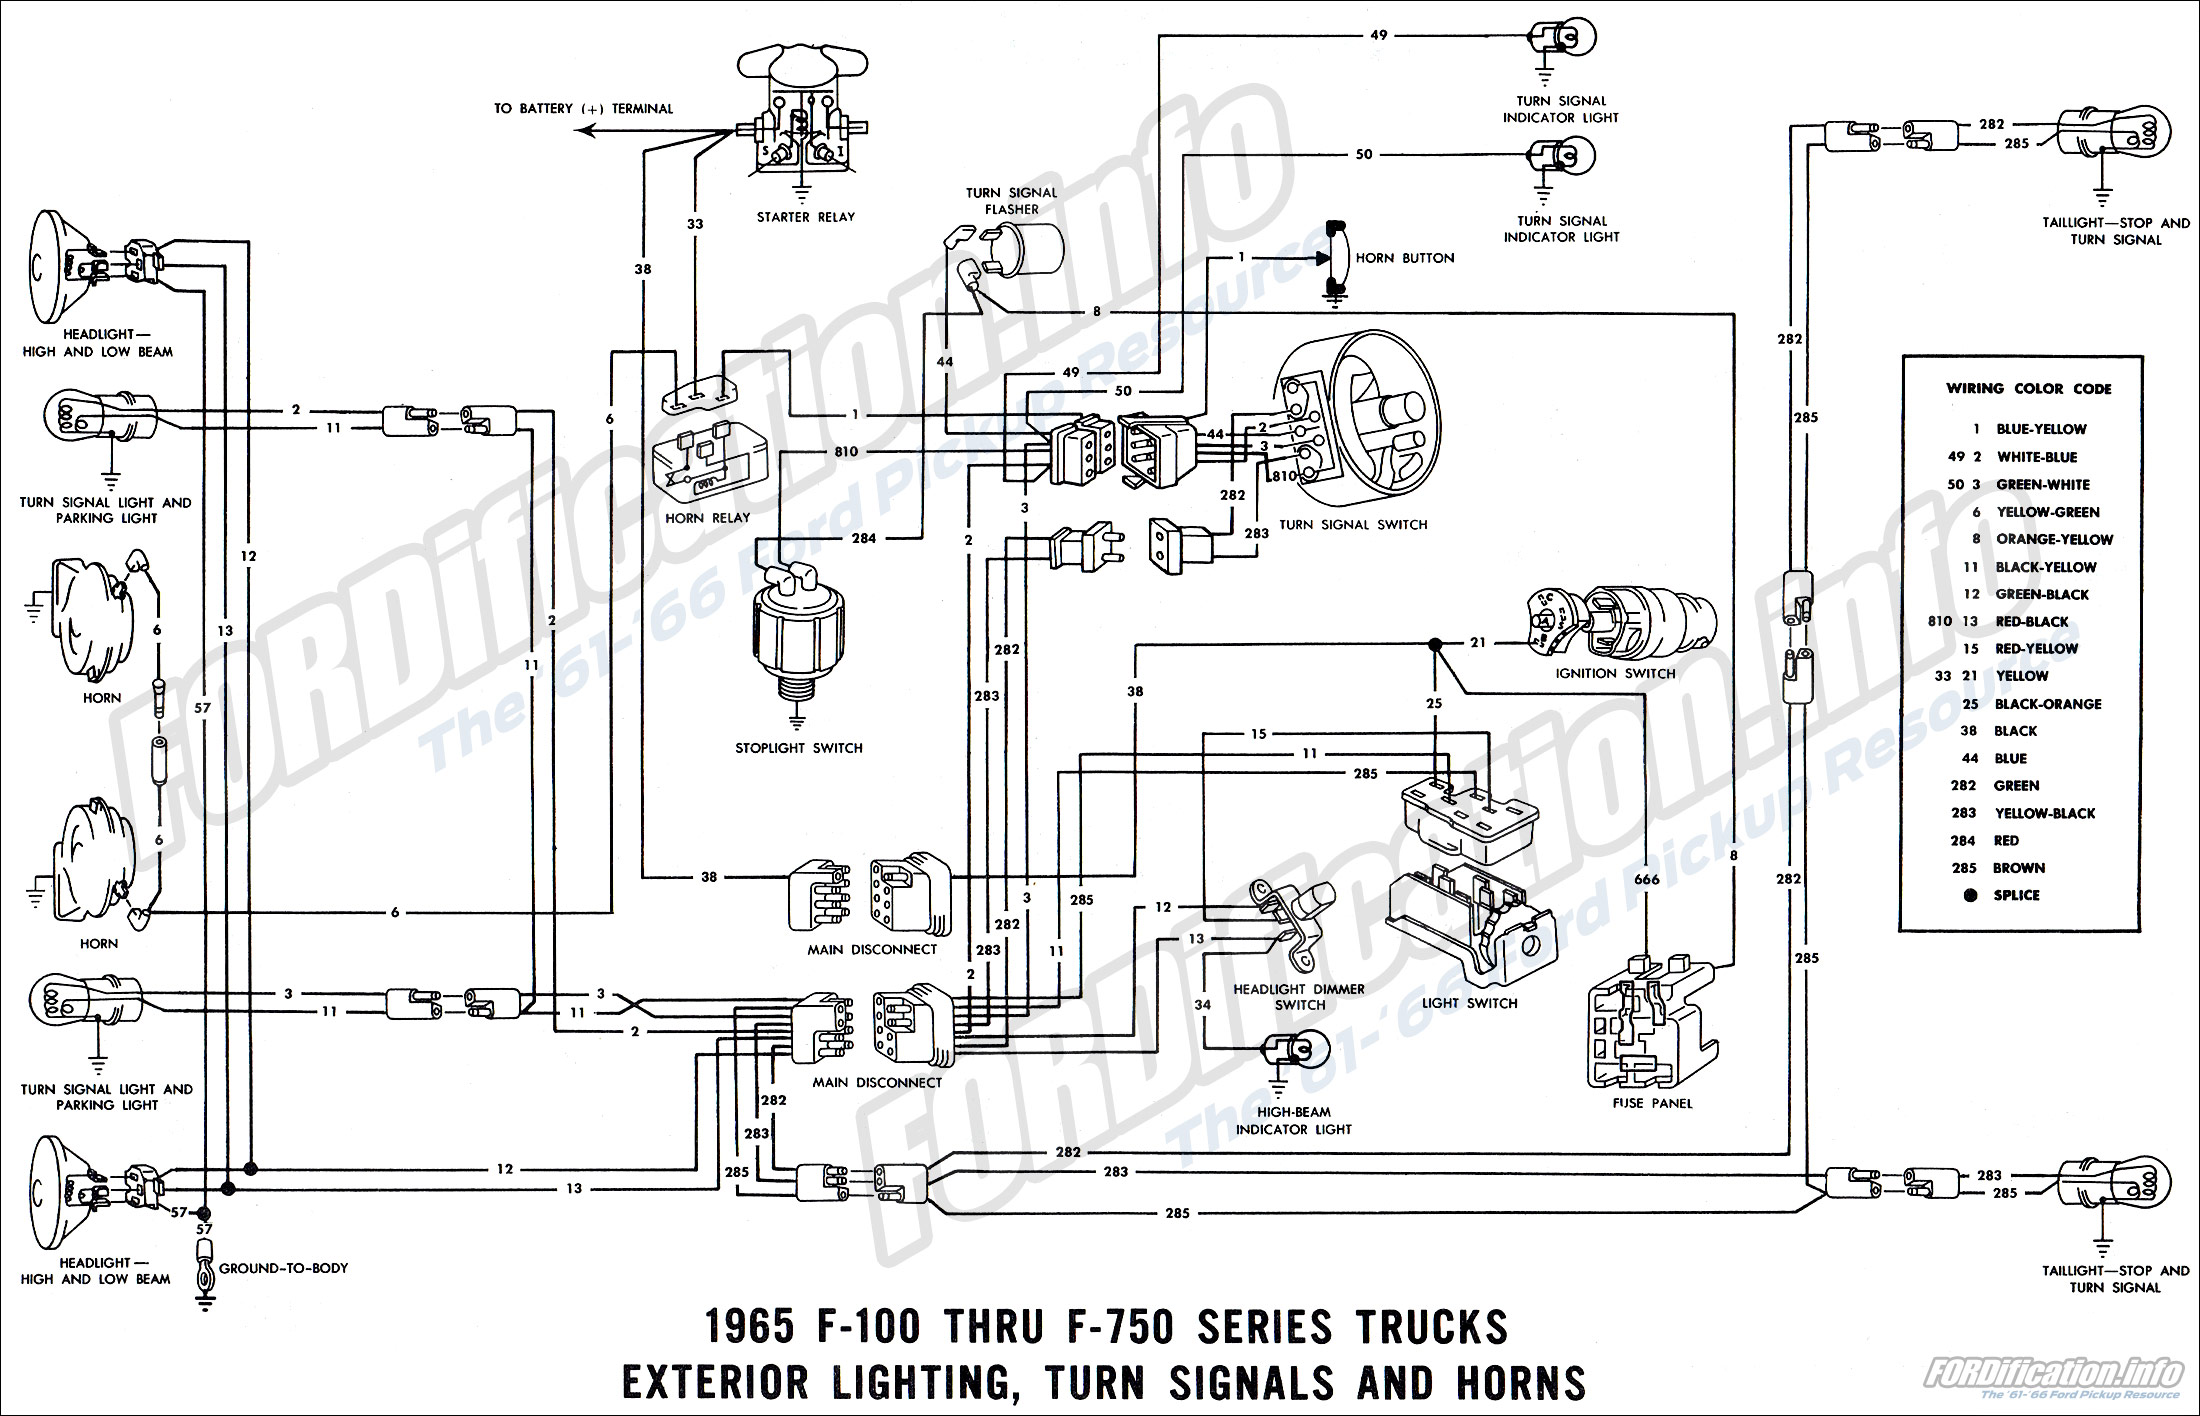 1953 Ford Main Line Wiring Diagram Wiring Diagram Theory Theory Zaafran It